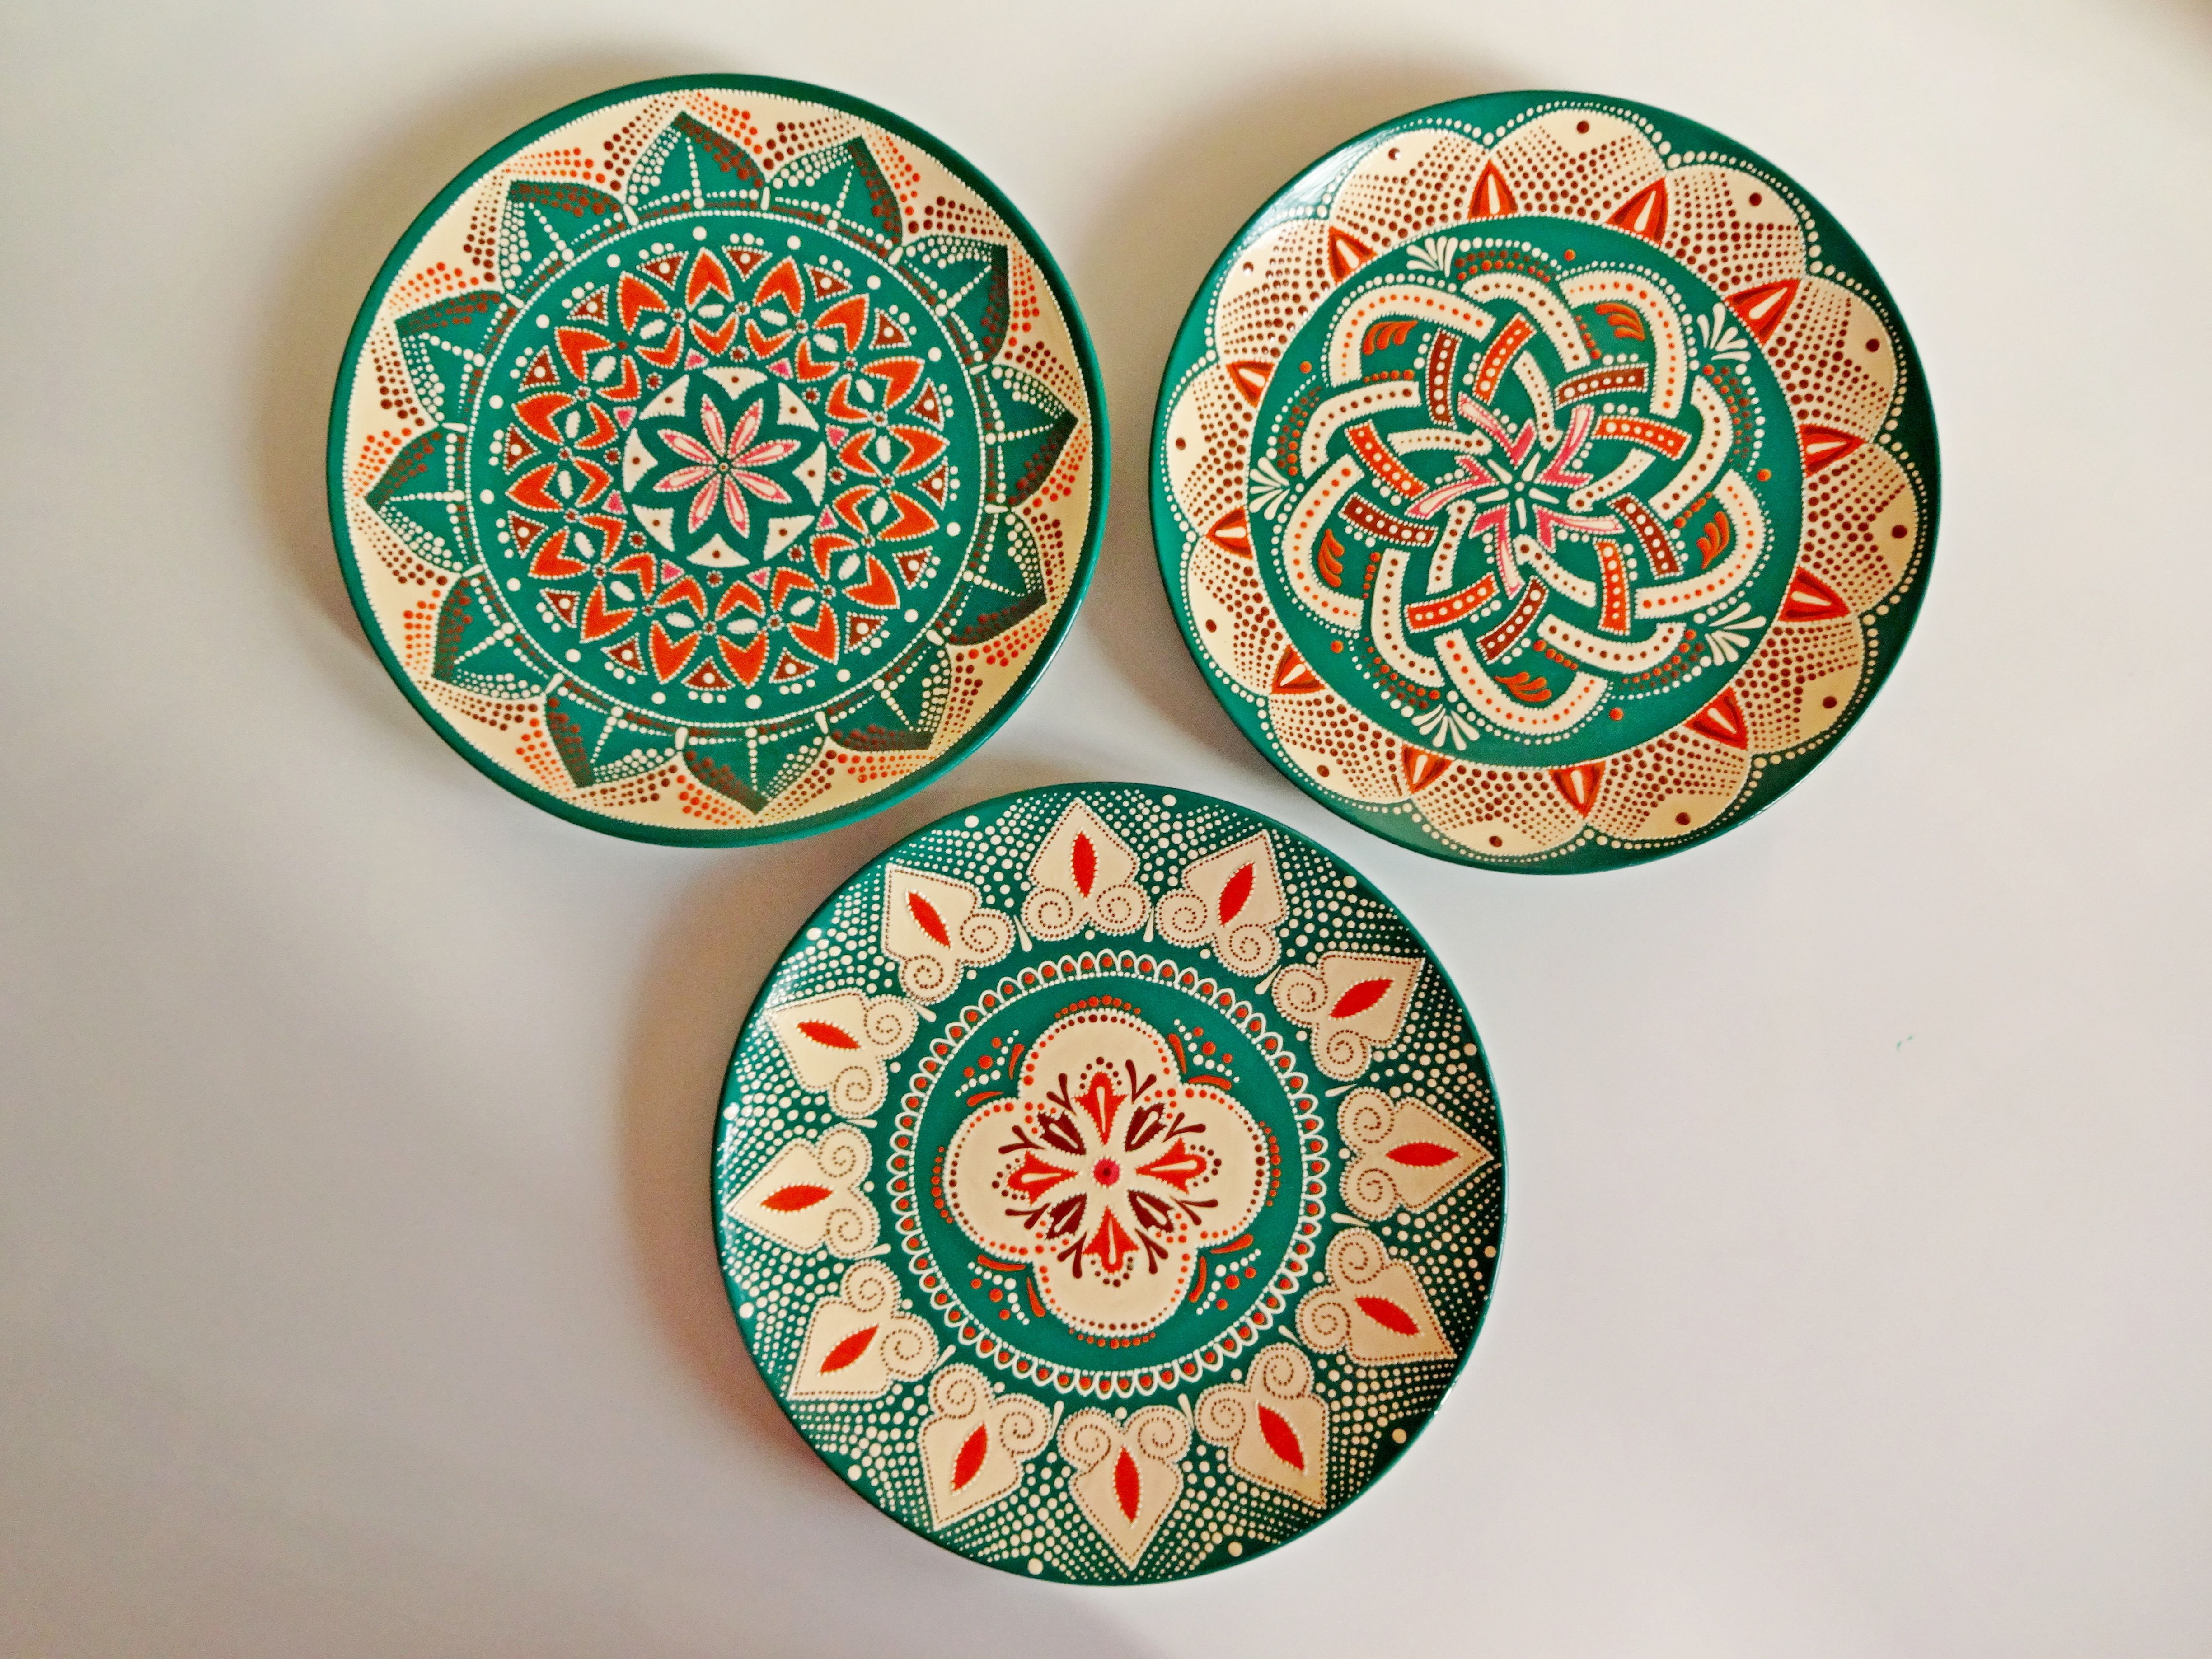 Set Of Decorative Plates For Hanging Mandala Plates Colorful Etsy In 2021 Hand Painted Plates Decorative Plates Colorful Plate